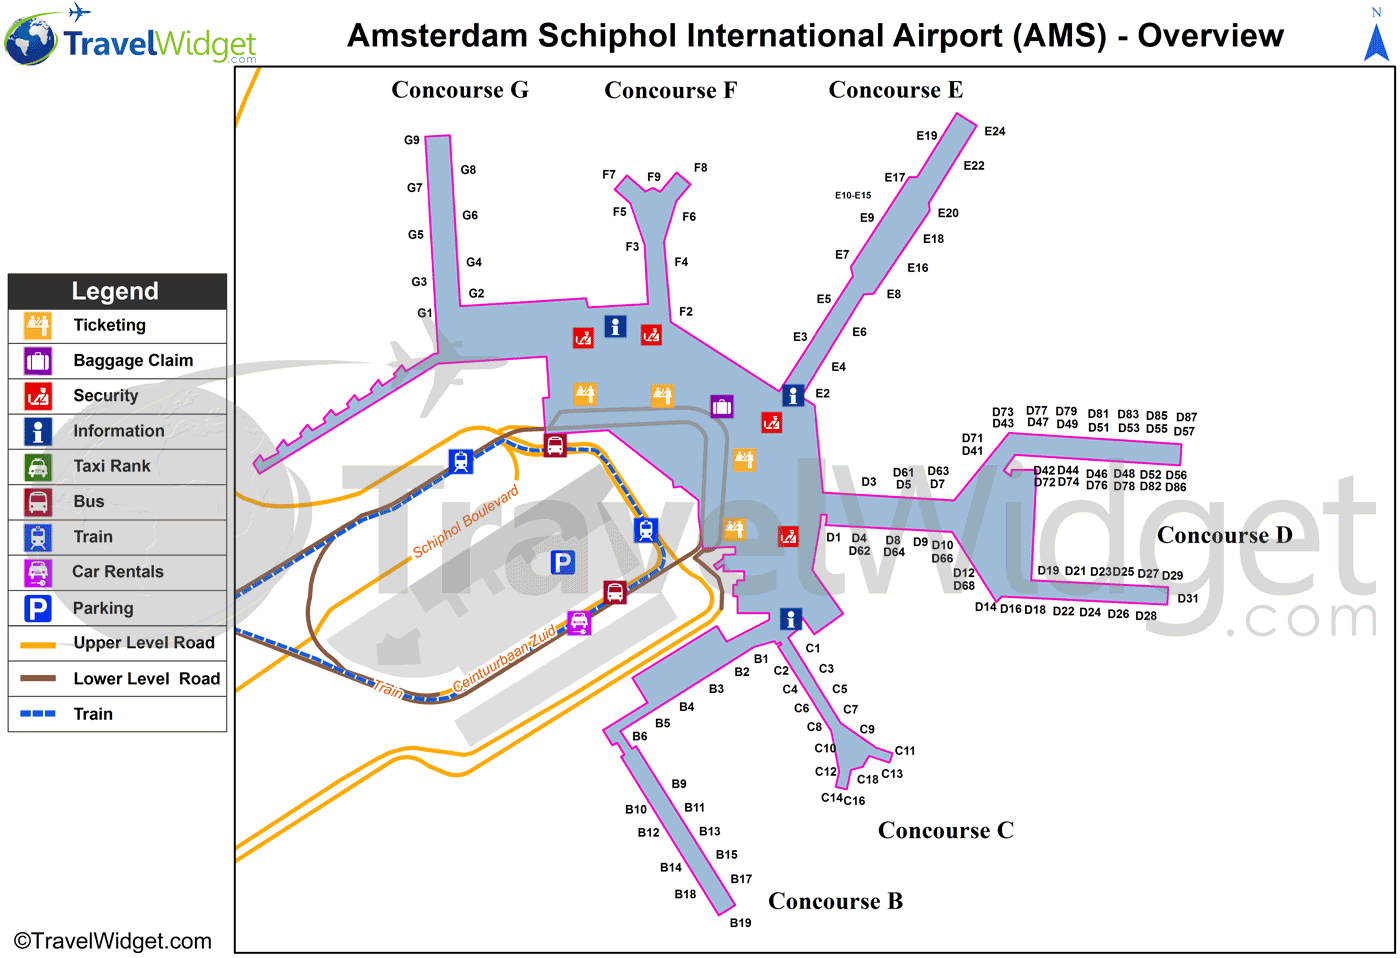 amsterdam schiphol airport map Map Of Amsterdam Schiphol Airport Terminal Google Search amsterdam schiphol airport map